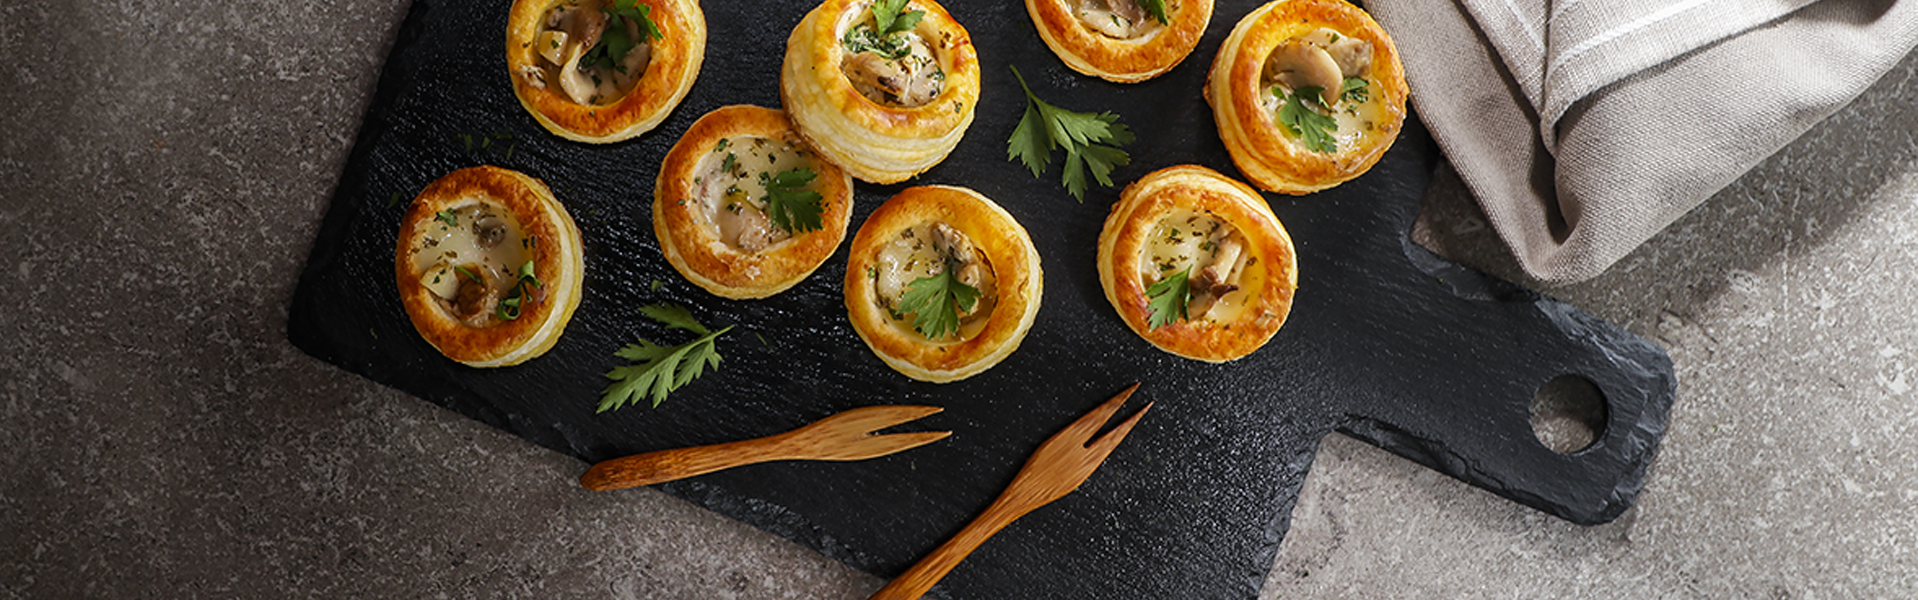 Vol-au-vent stuffed with taleggio cheese and courgettes